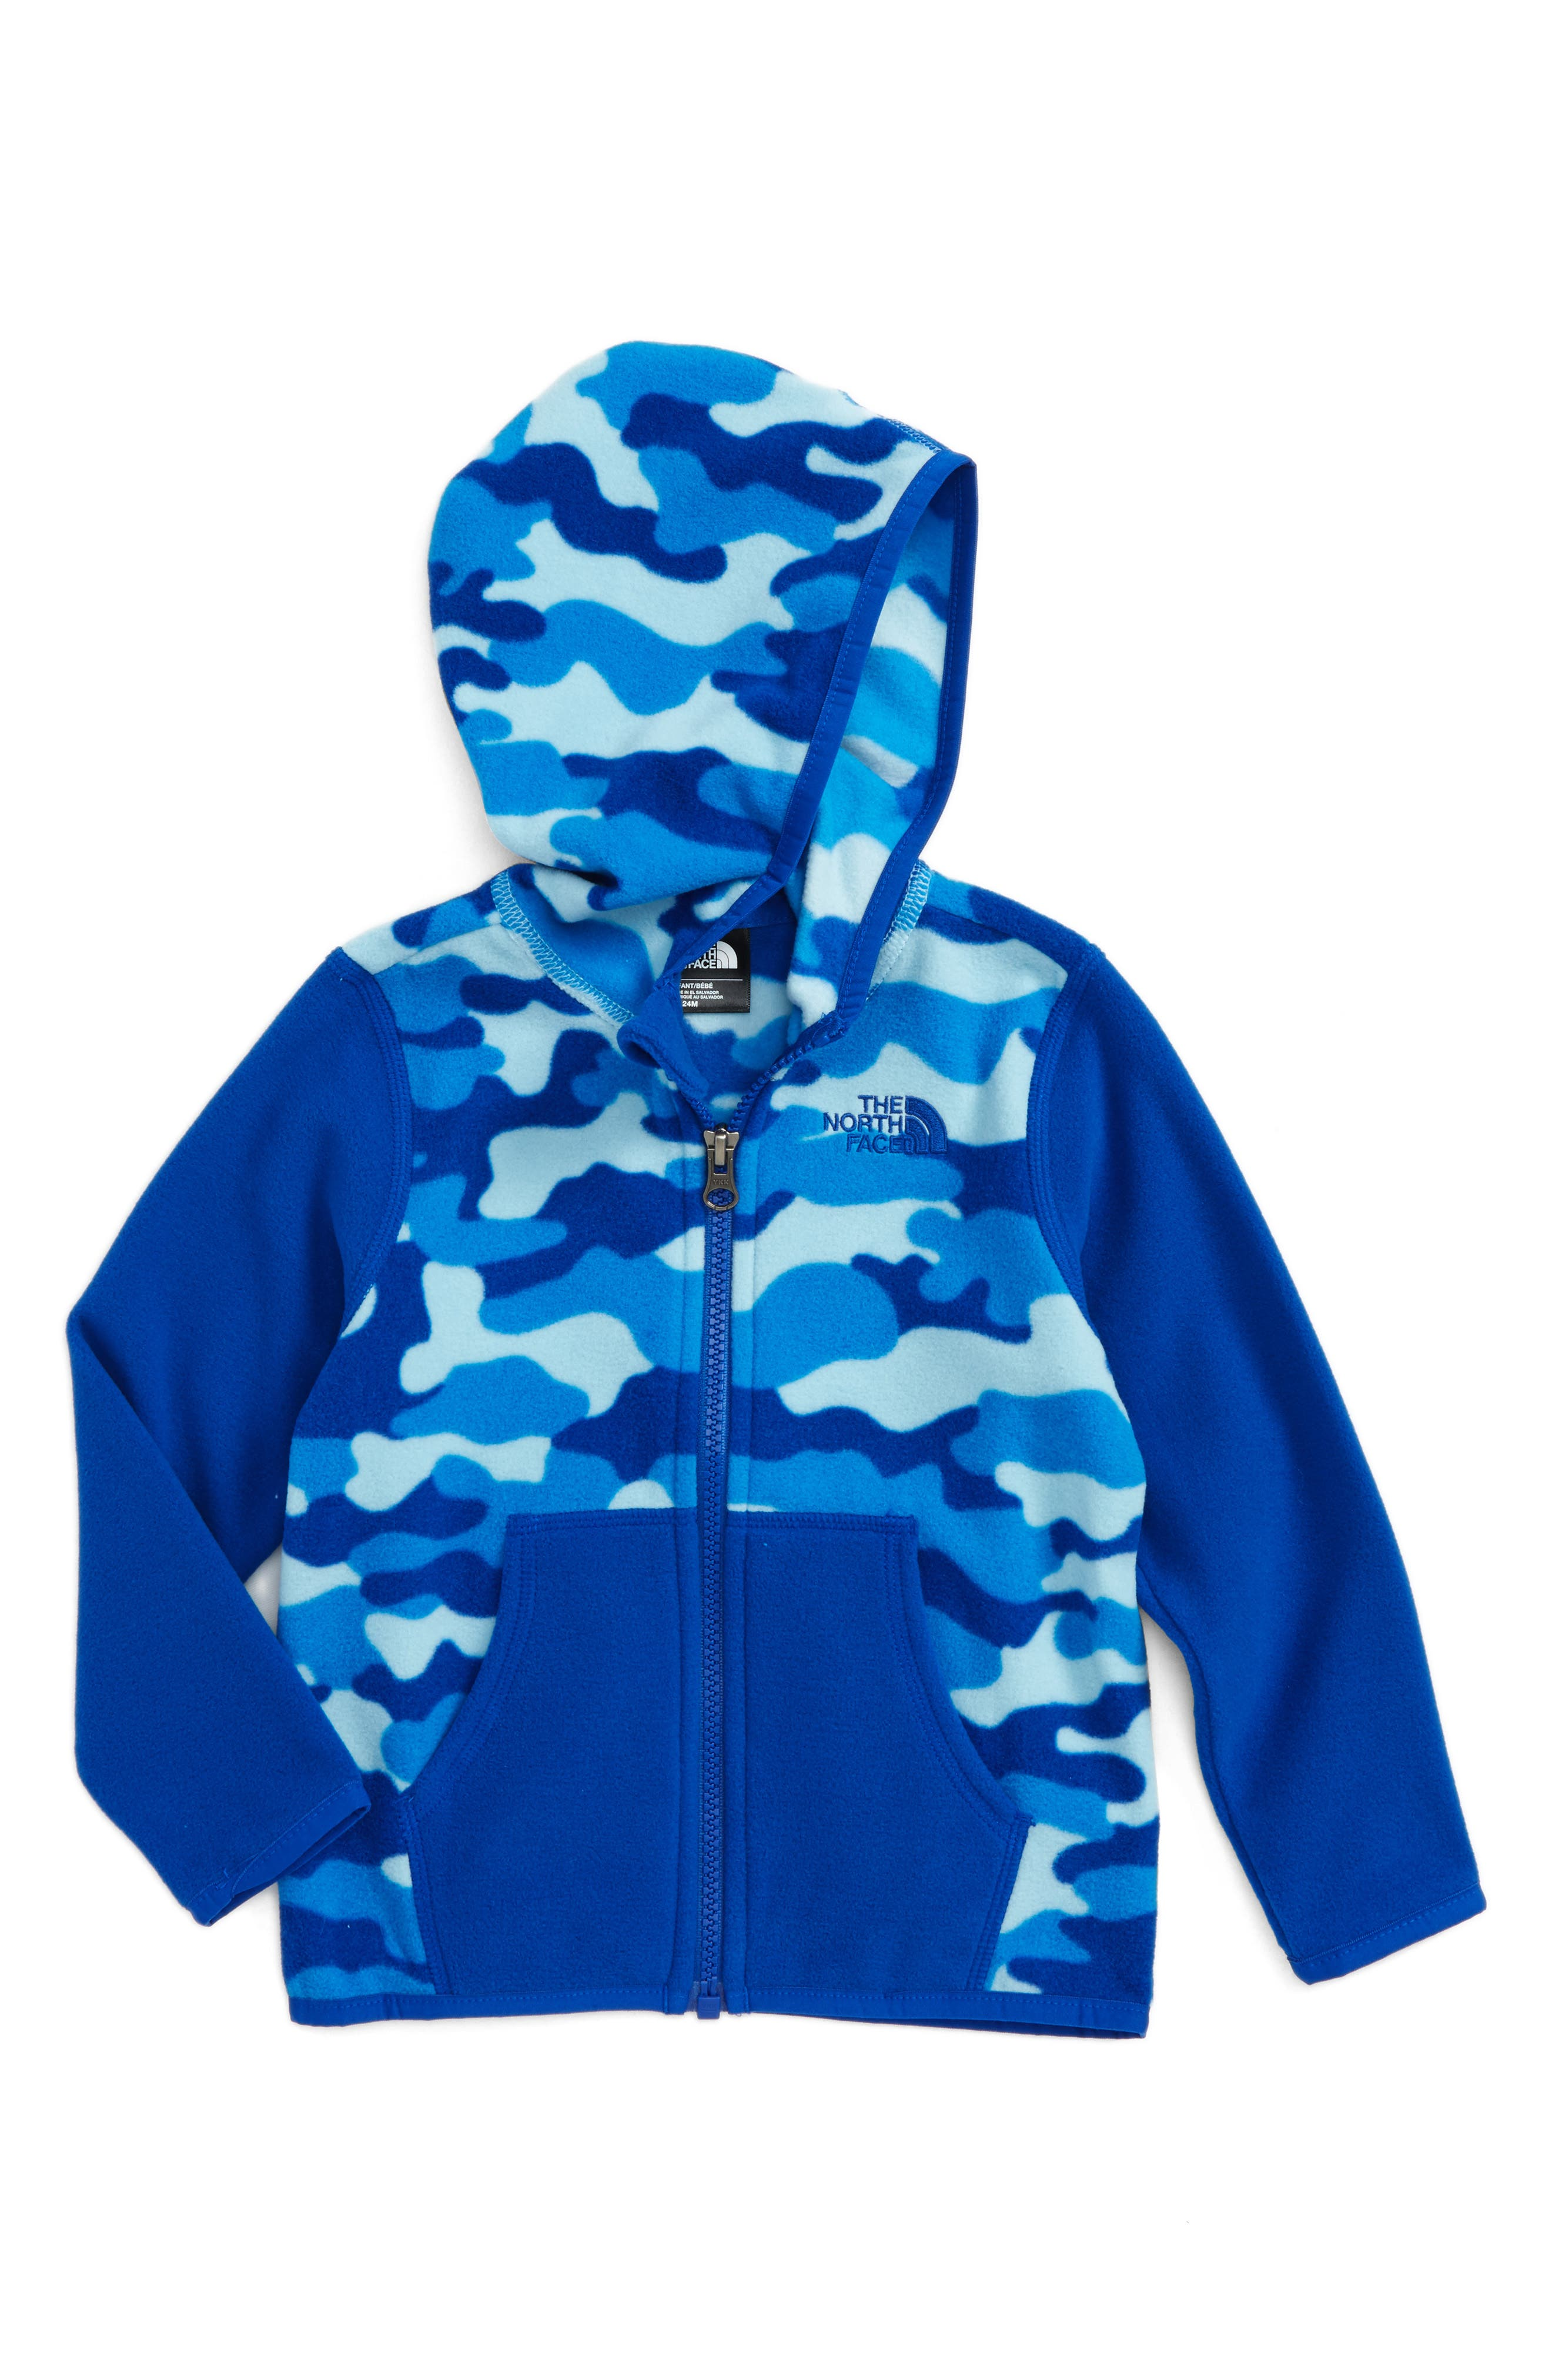 The North Face 'Glacier' Zip Hoodie (Baby Boys)